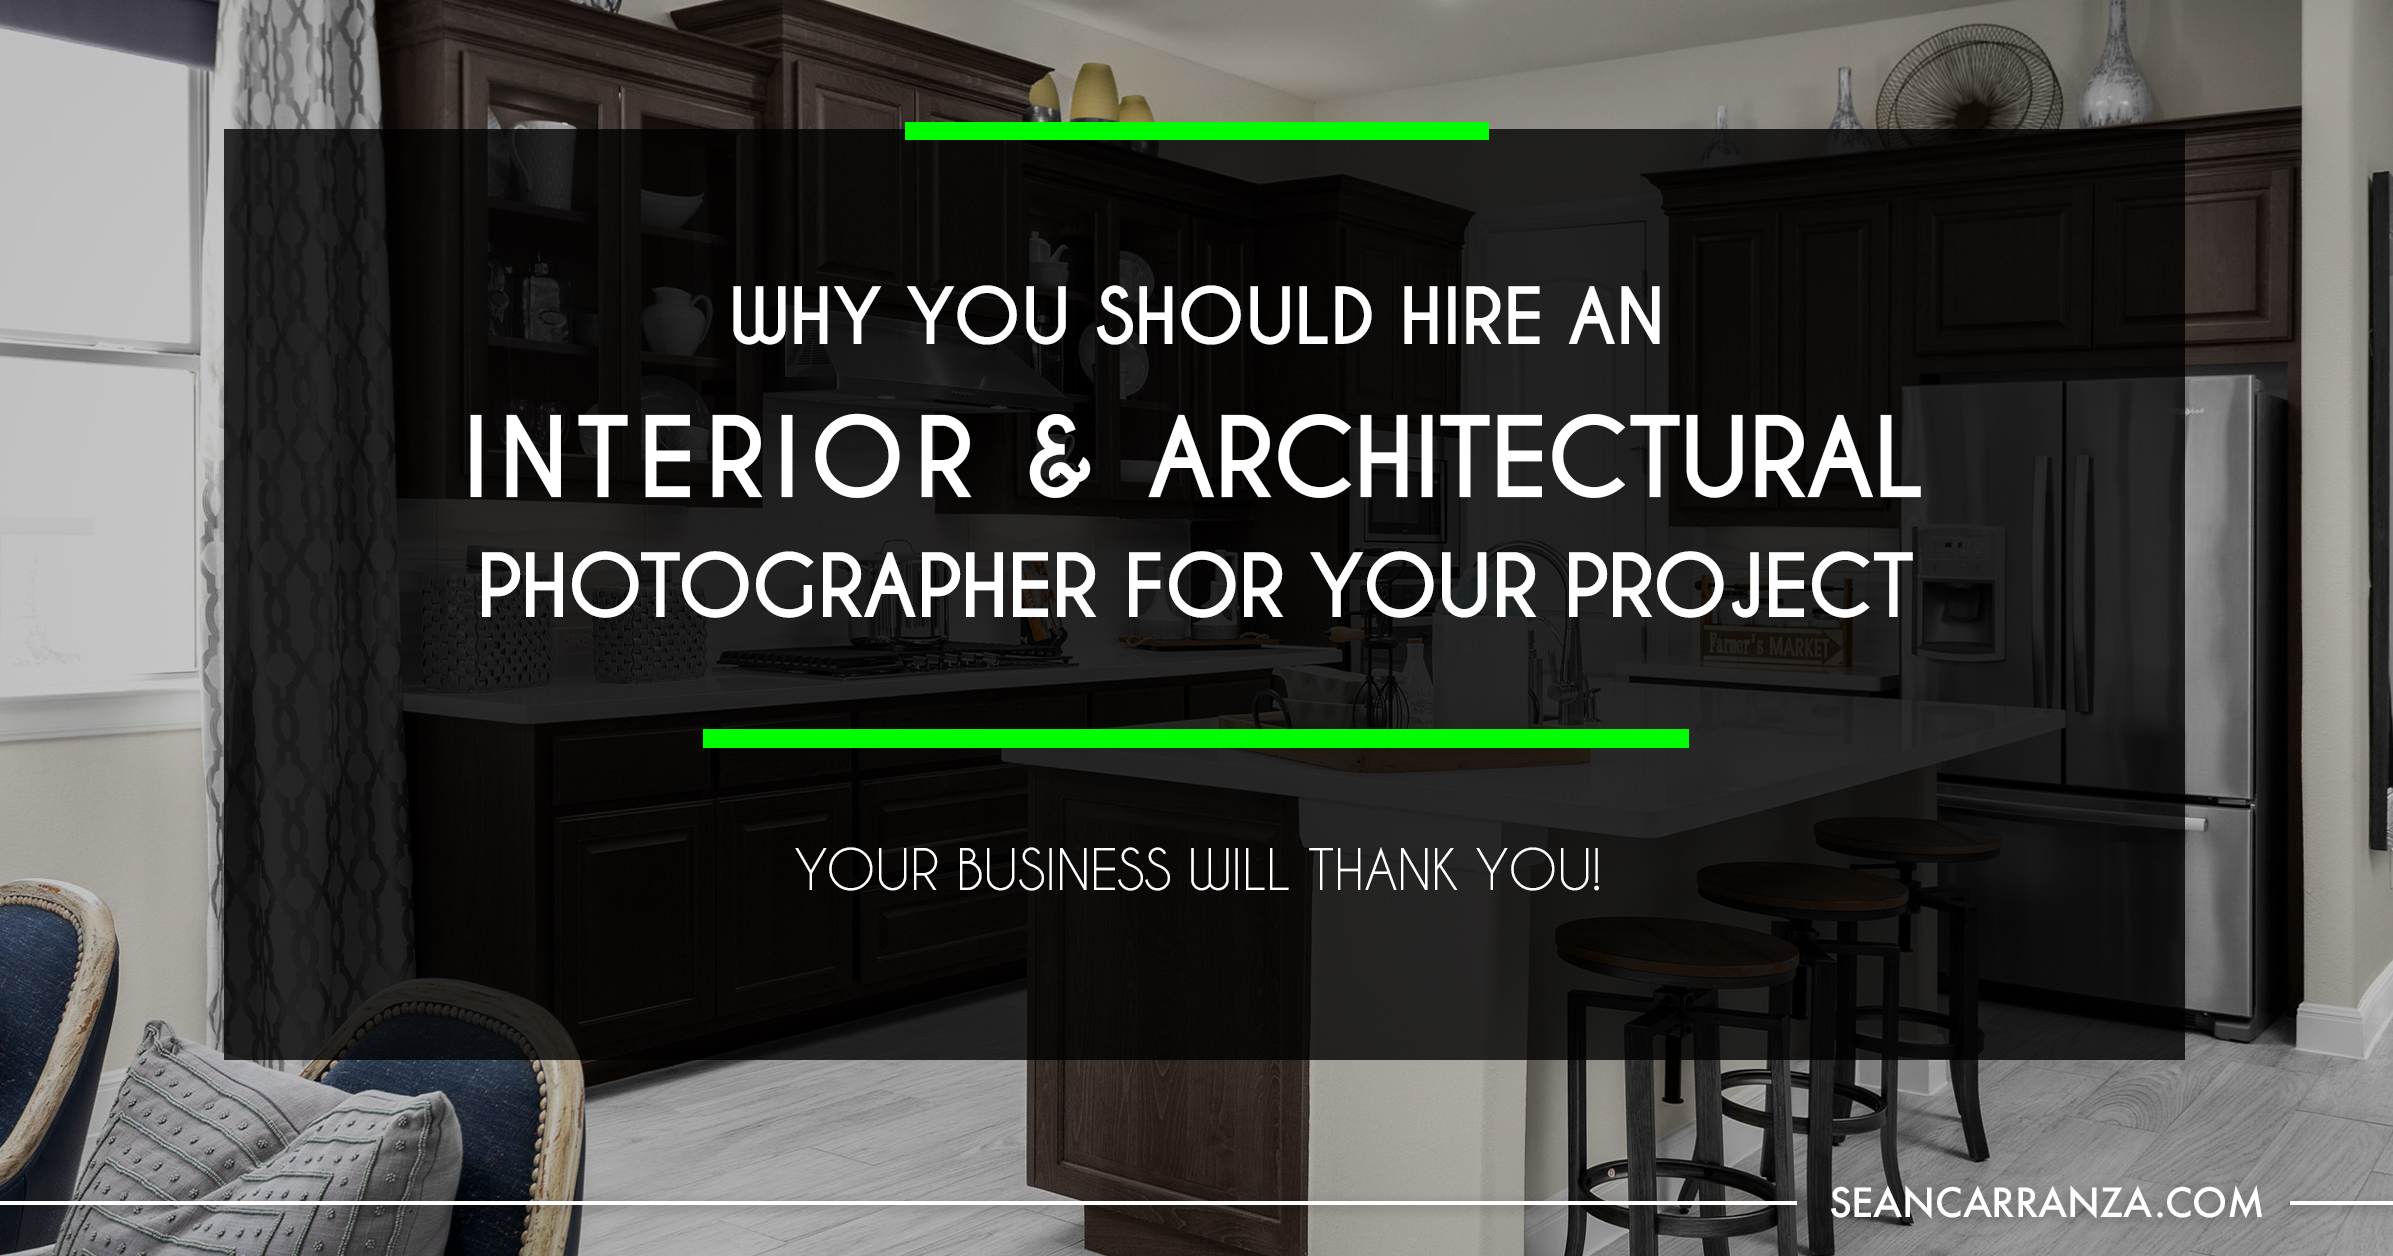 FB-Why-You-Should-Hire-a-Professional-Interior-Architectural-Photographer.jpg